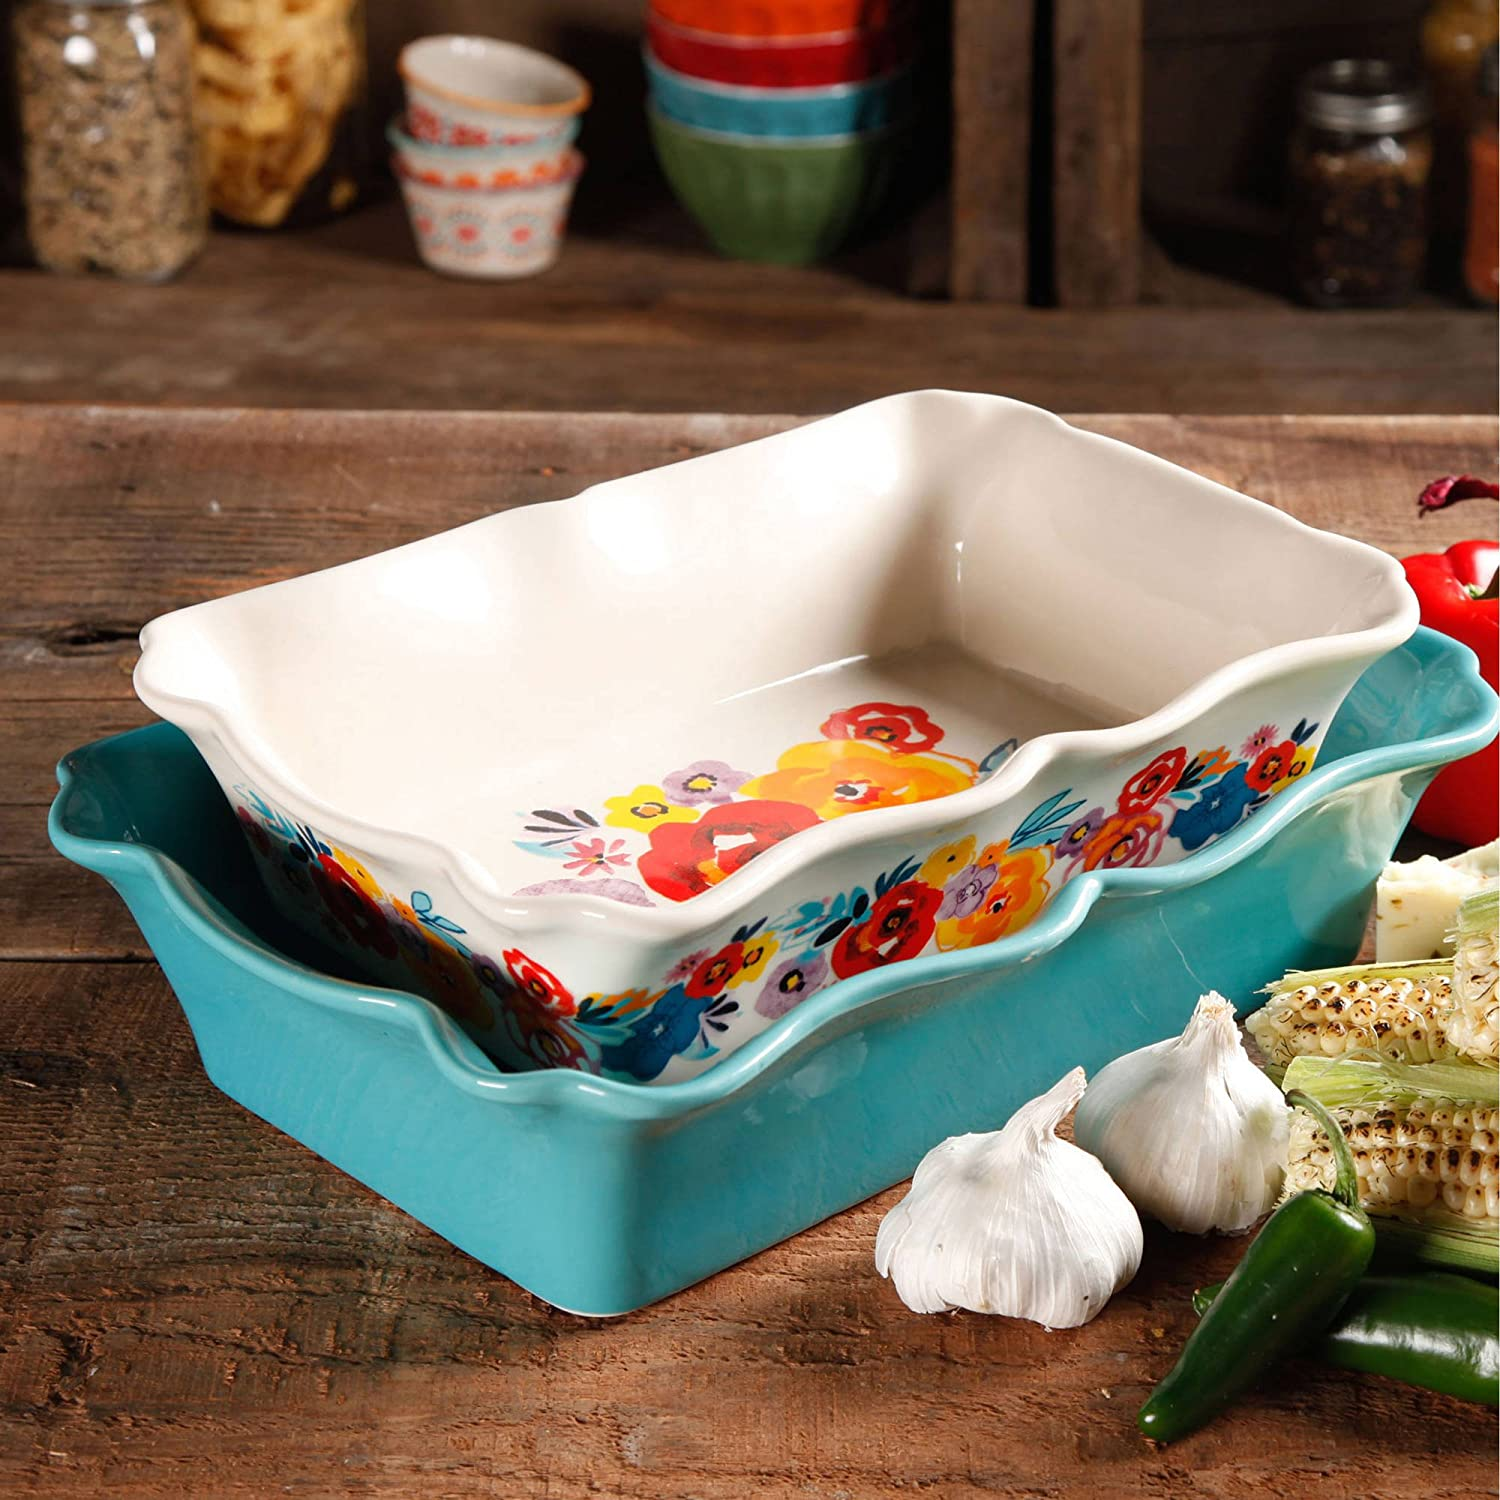 The Pioneer Woman Flea Market 2-Piece Decorated Rectangular Ruffle Top Ceramic Bakeware Set by The Pioneer Woman 82829.02R